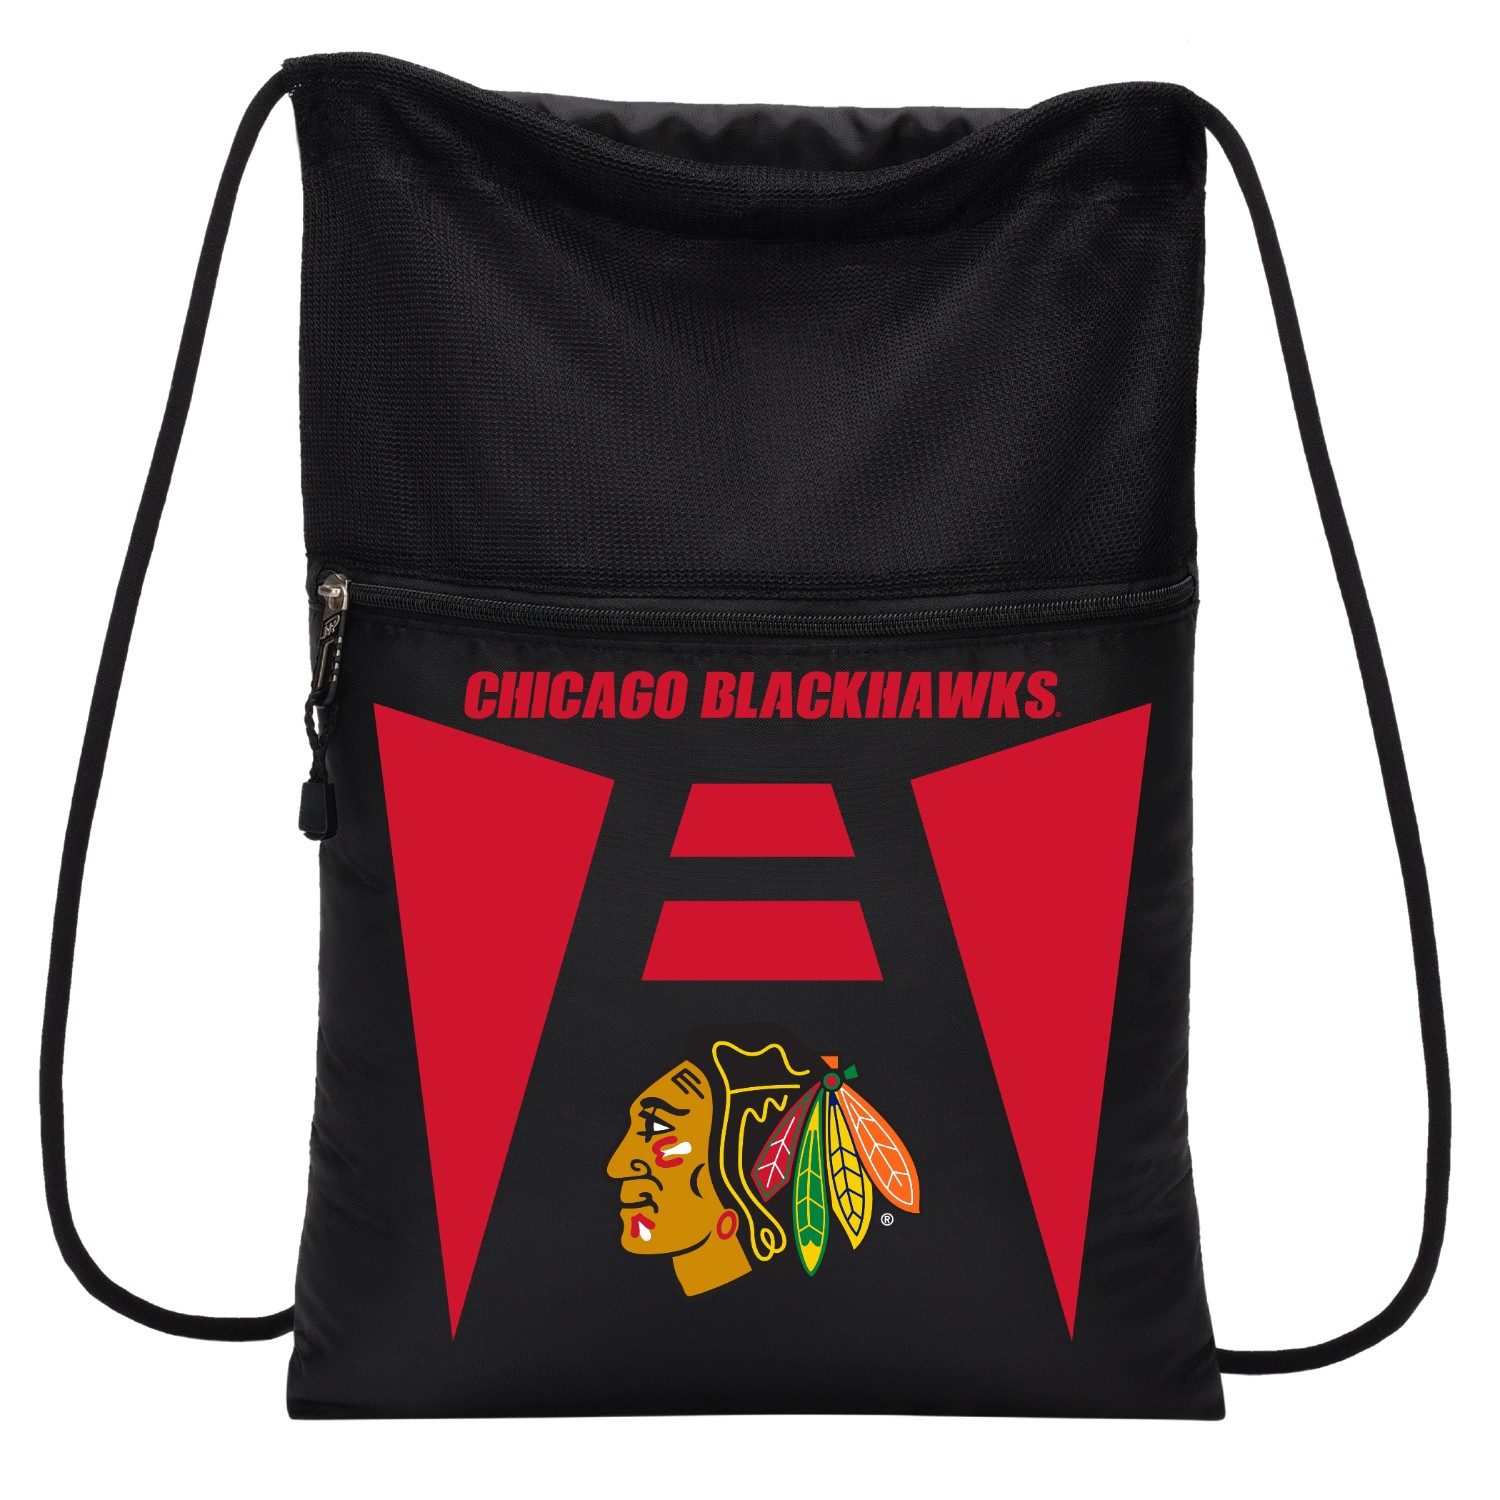 Chicago Blackhawks Team Tech Backsack